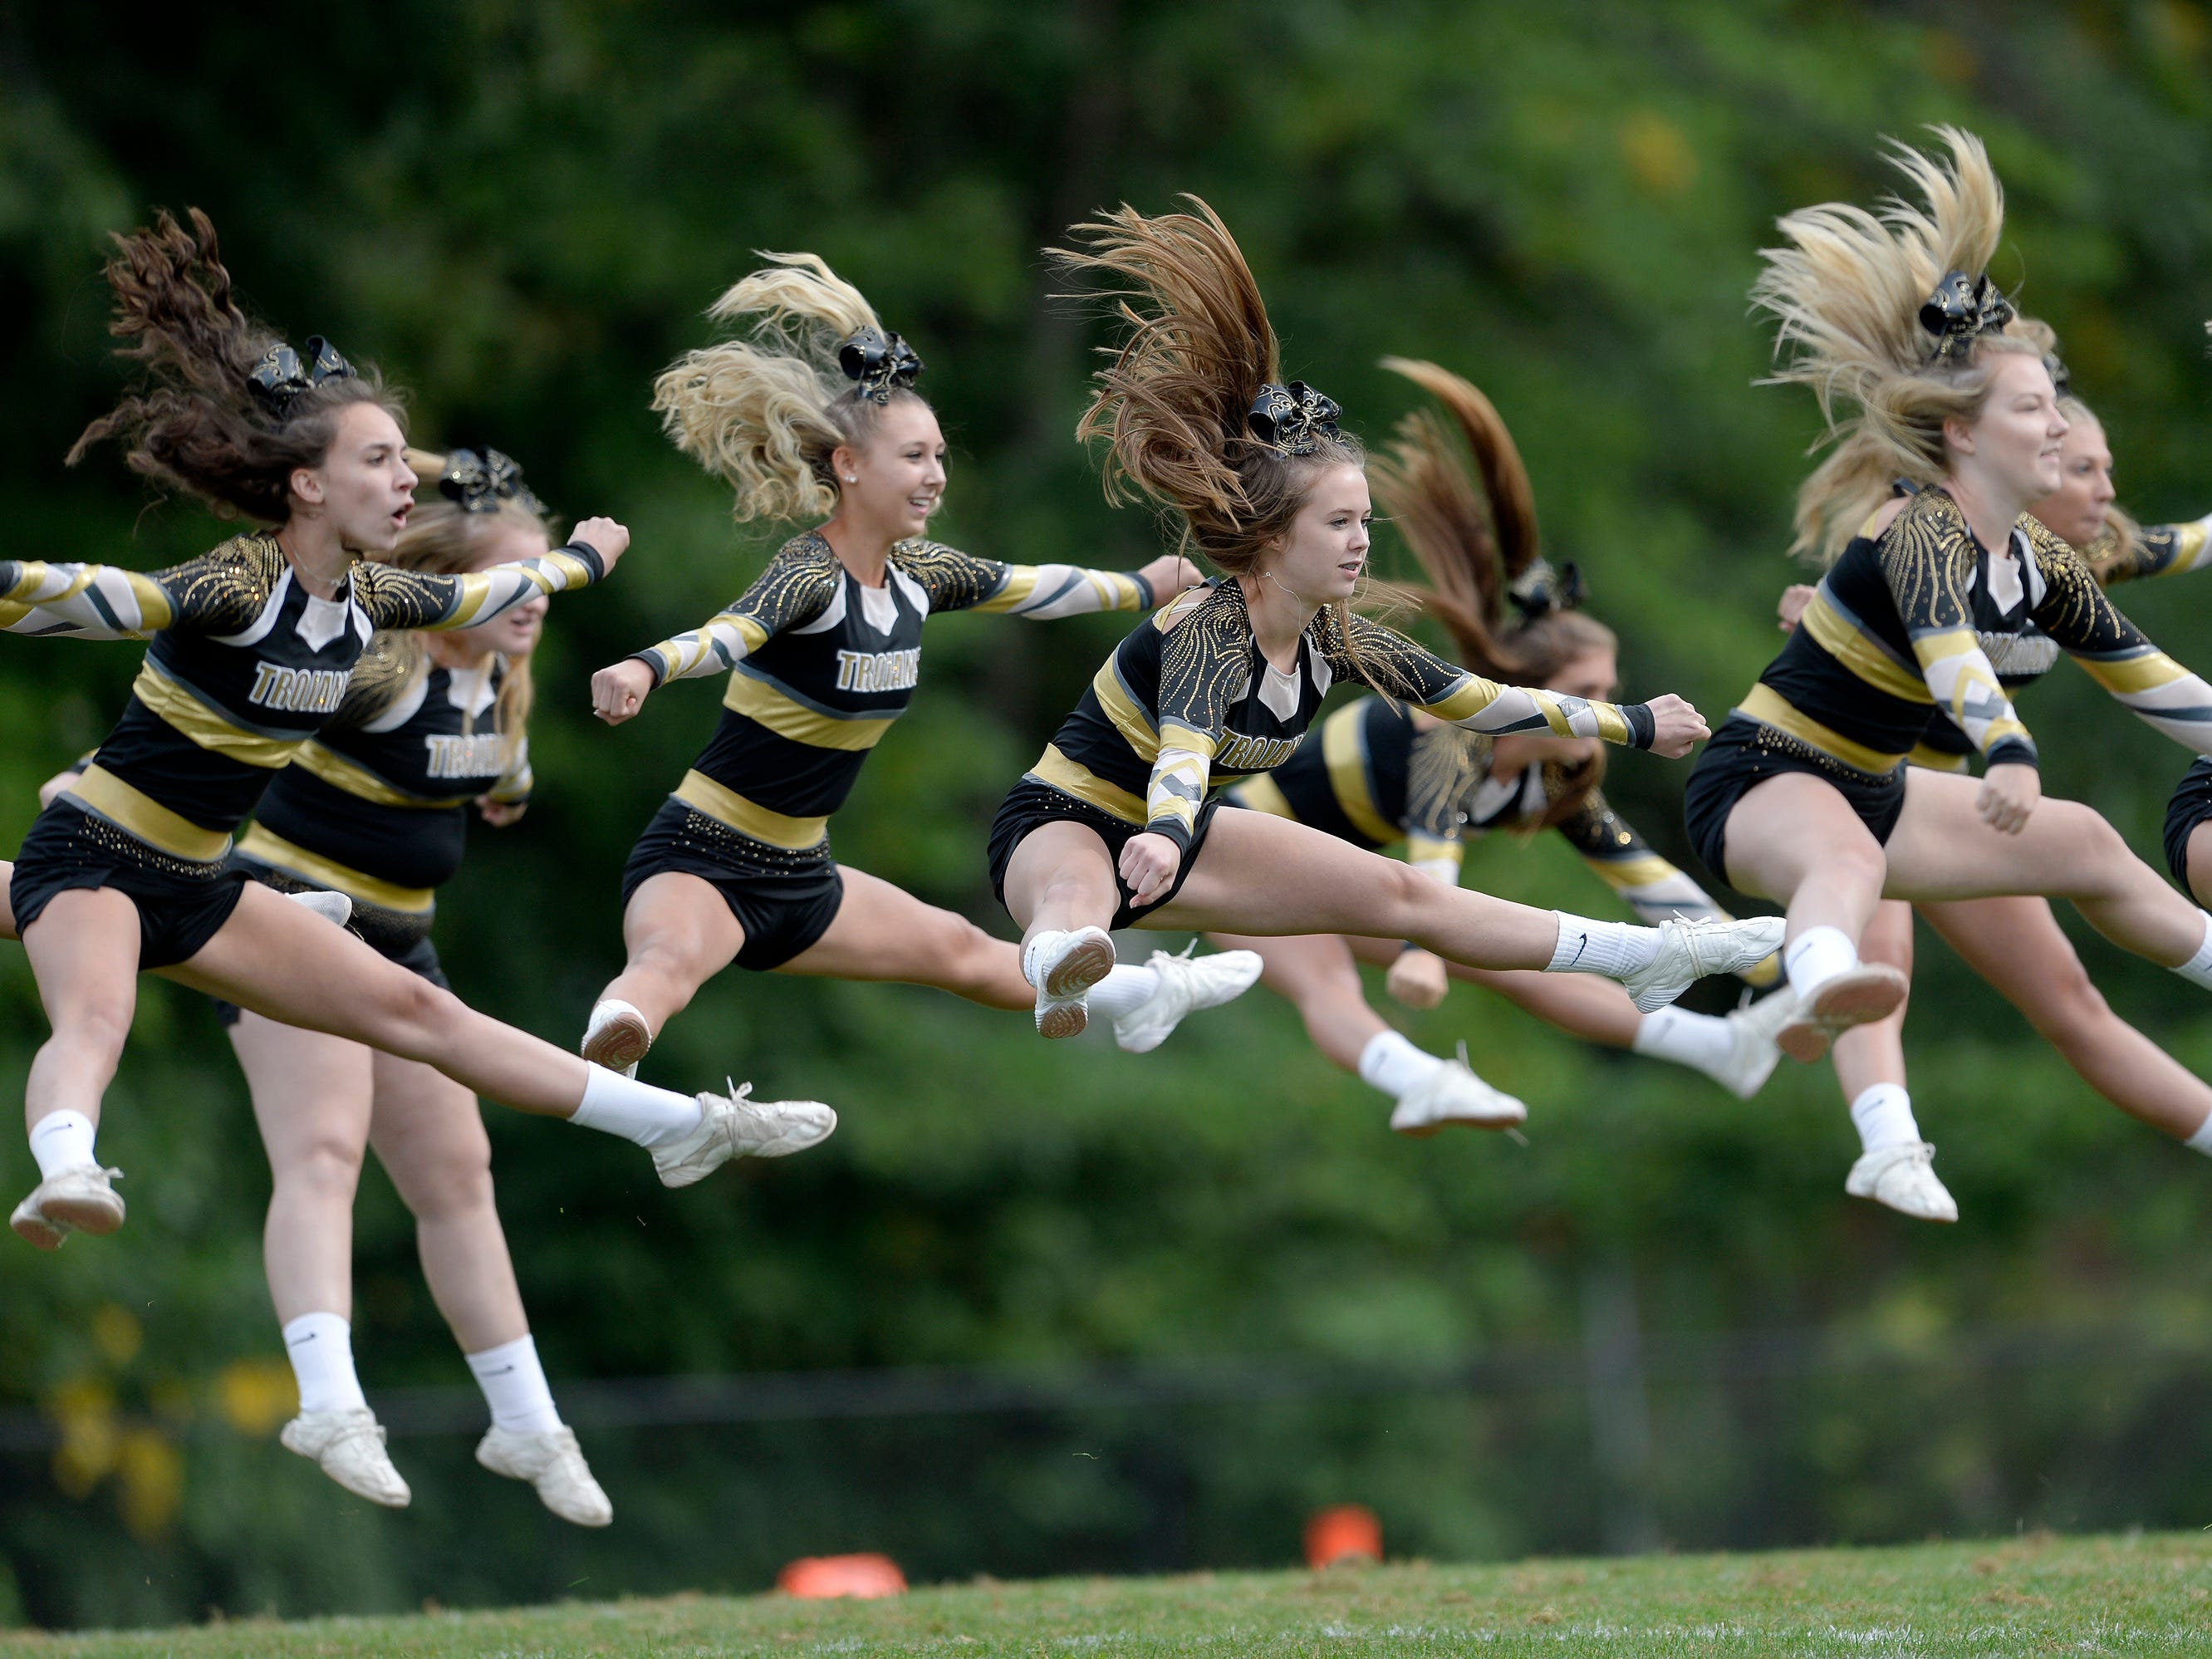 Greece Athena cheerleaders perform a halftime routine during Saturday's game against Irondequoit at Greece Athena High School.